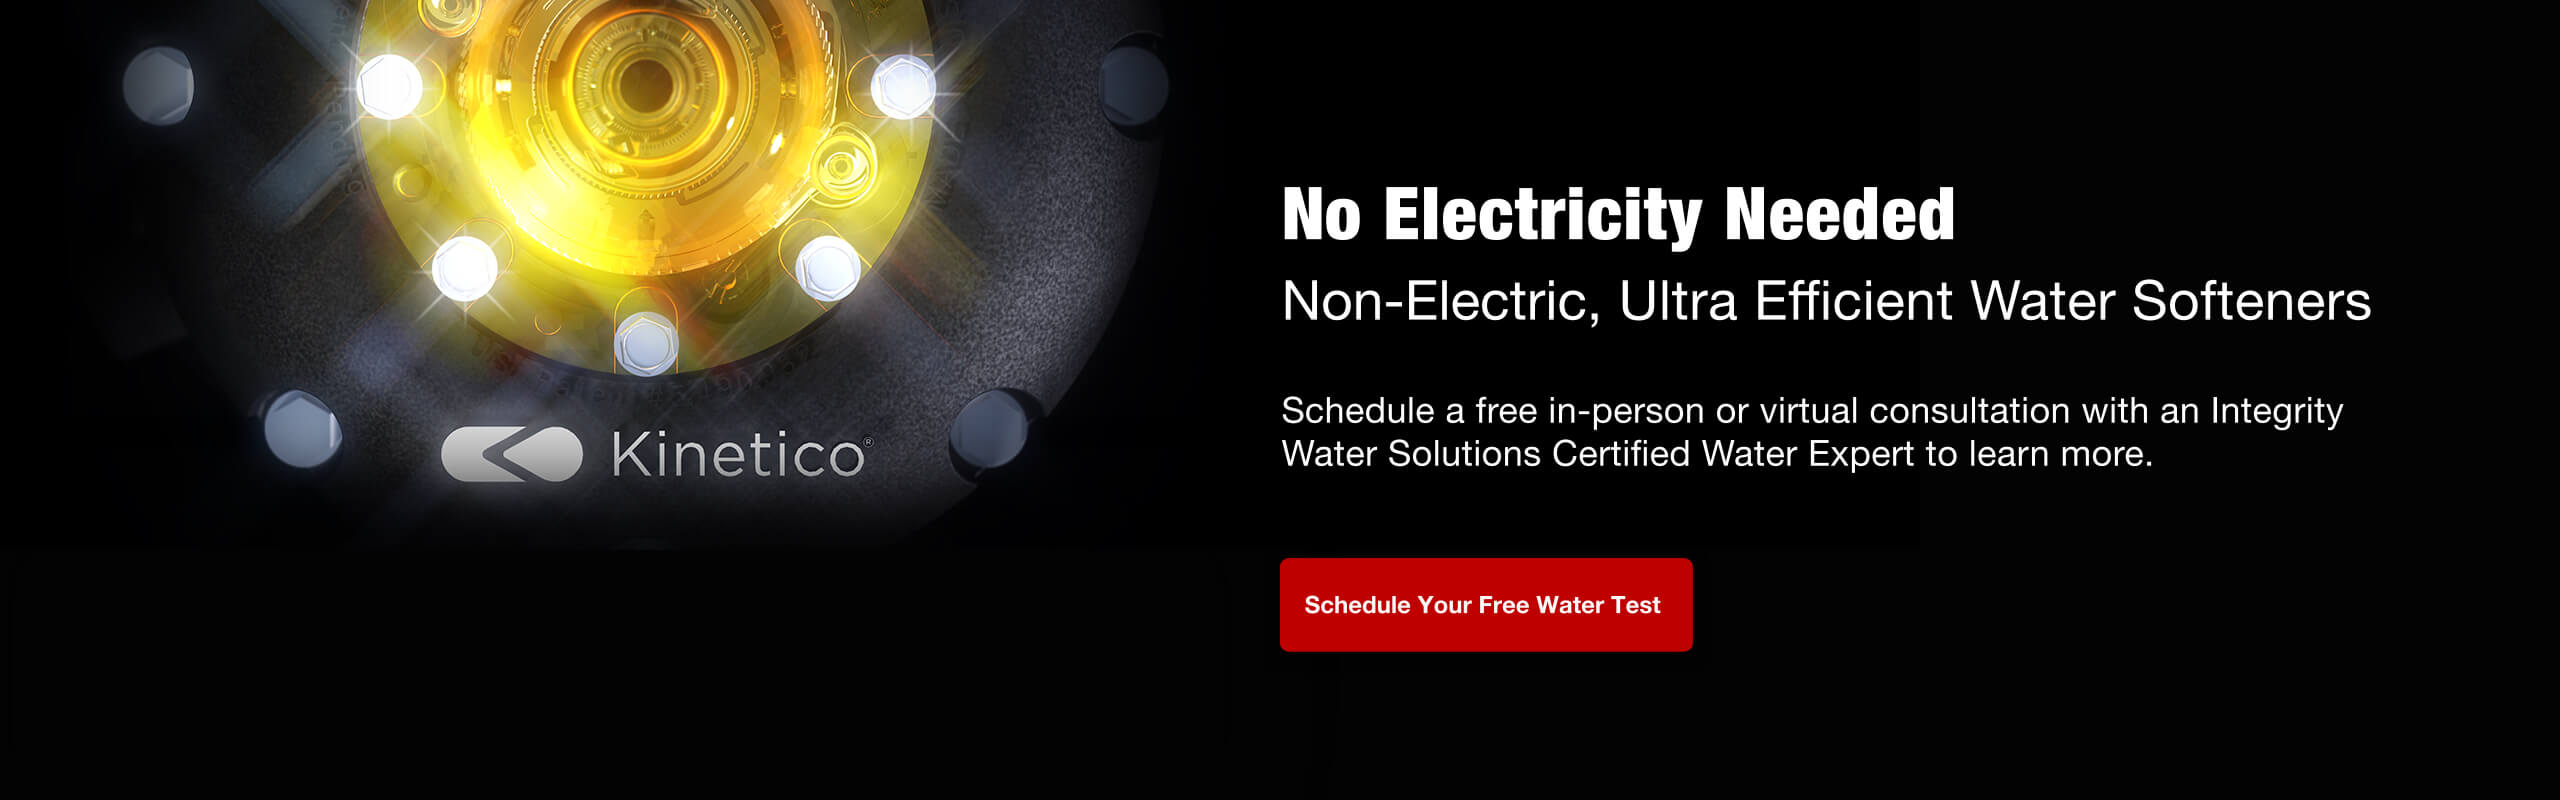 Integrity Water Solutions Non-Electric Water Softeners